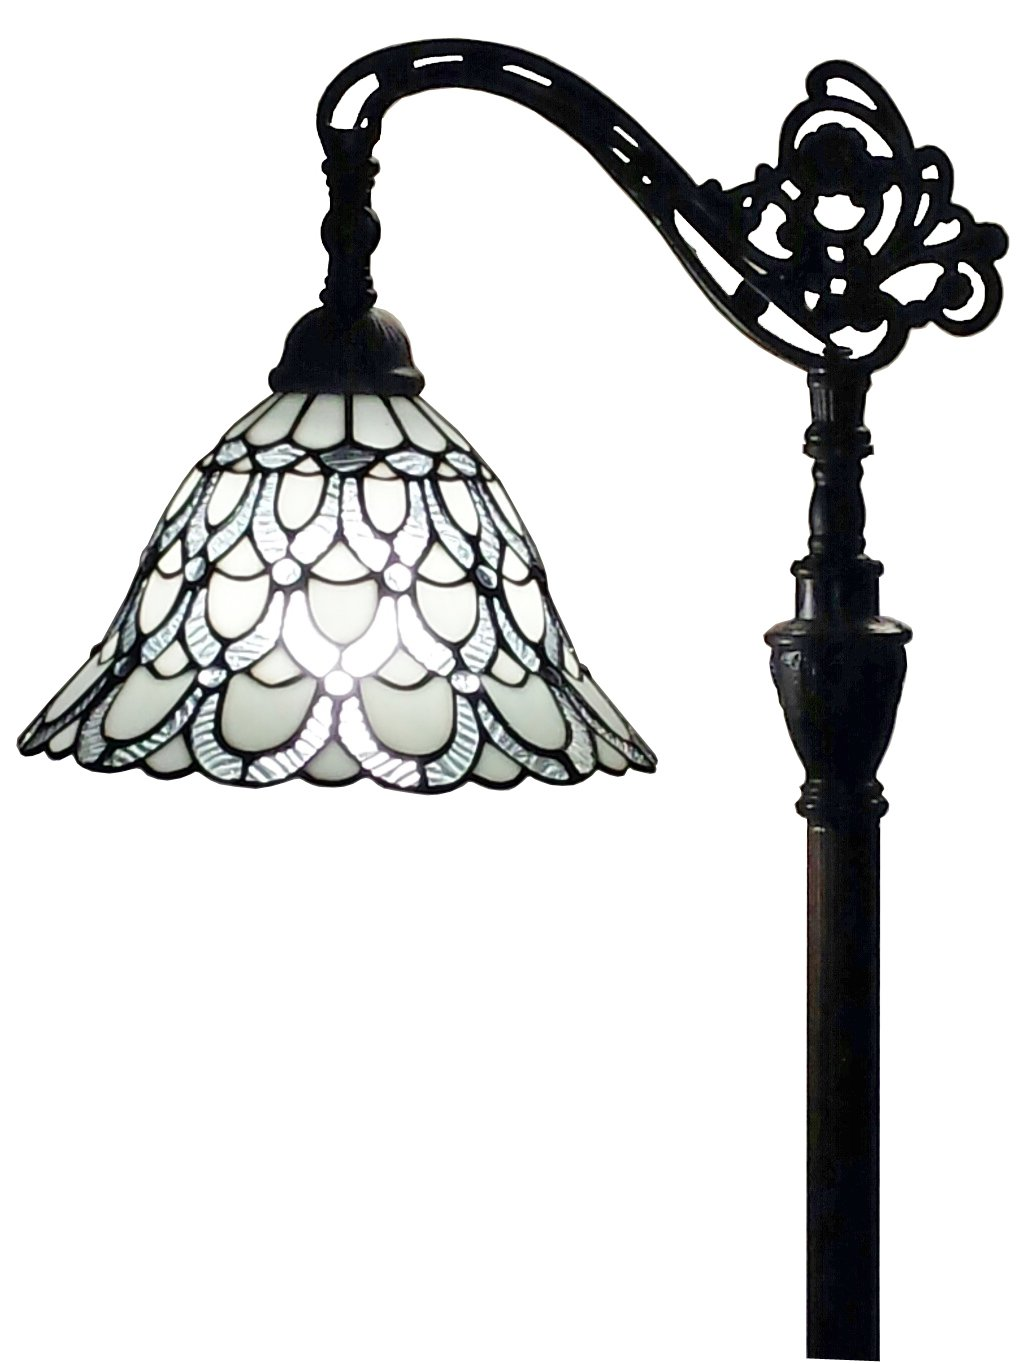 Amora lighting am107fl11 tiffany style floor lamp 62 in adjustable amora lighting am107fl11 tiffany style floor lamp 62 in adjustable shade amazon aloadofball Image collections